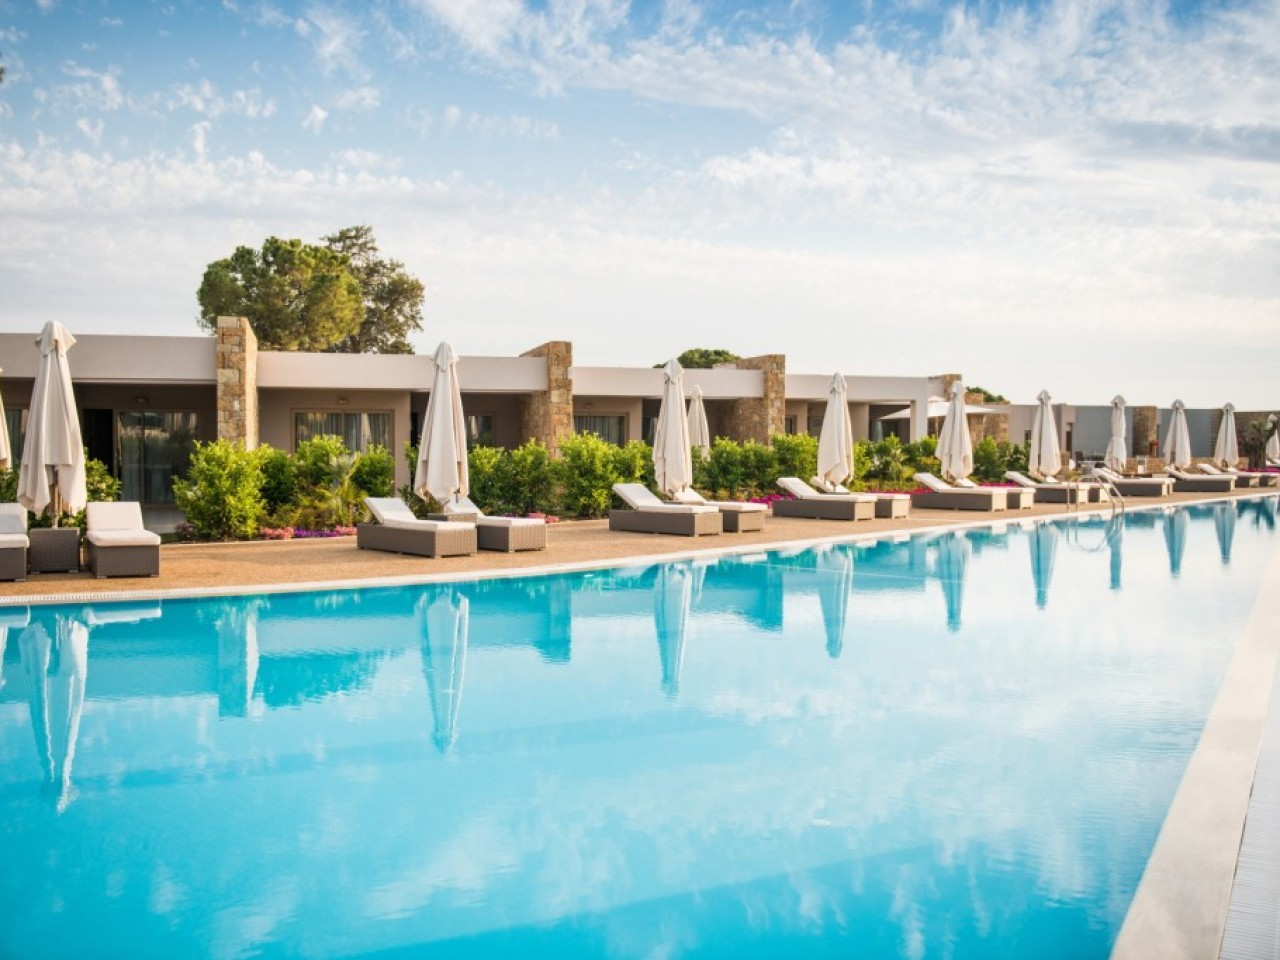 Luxurious Hotels in Halkidiki